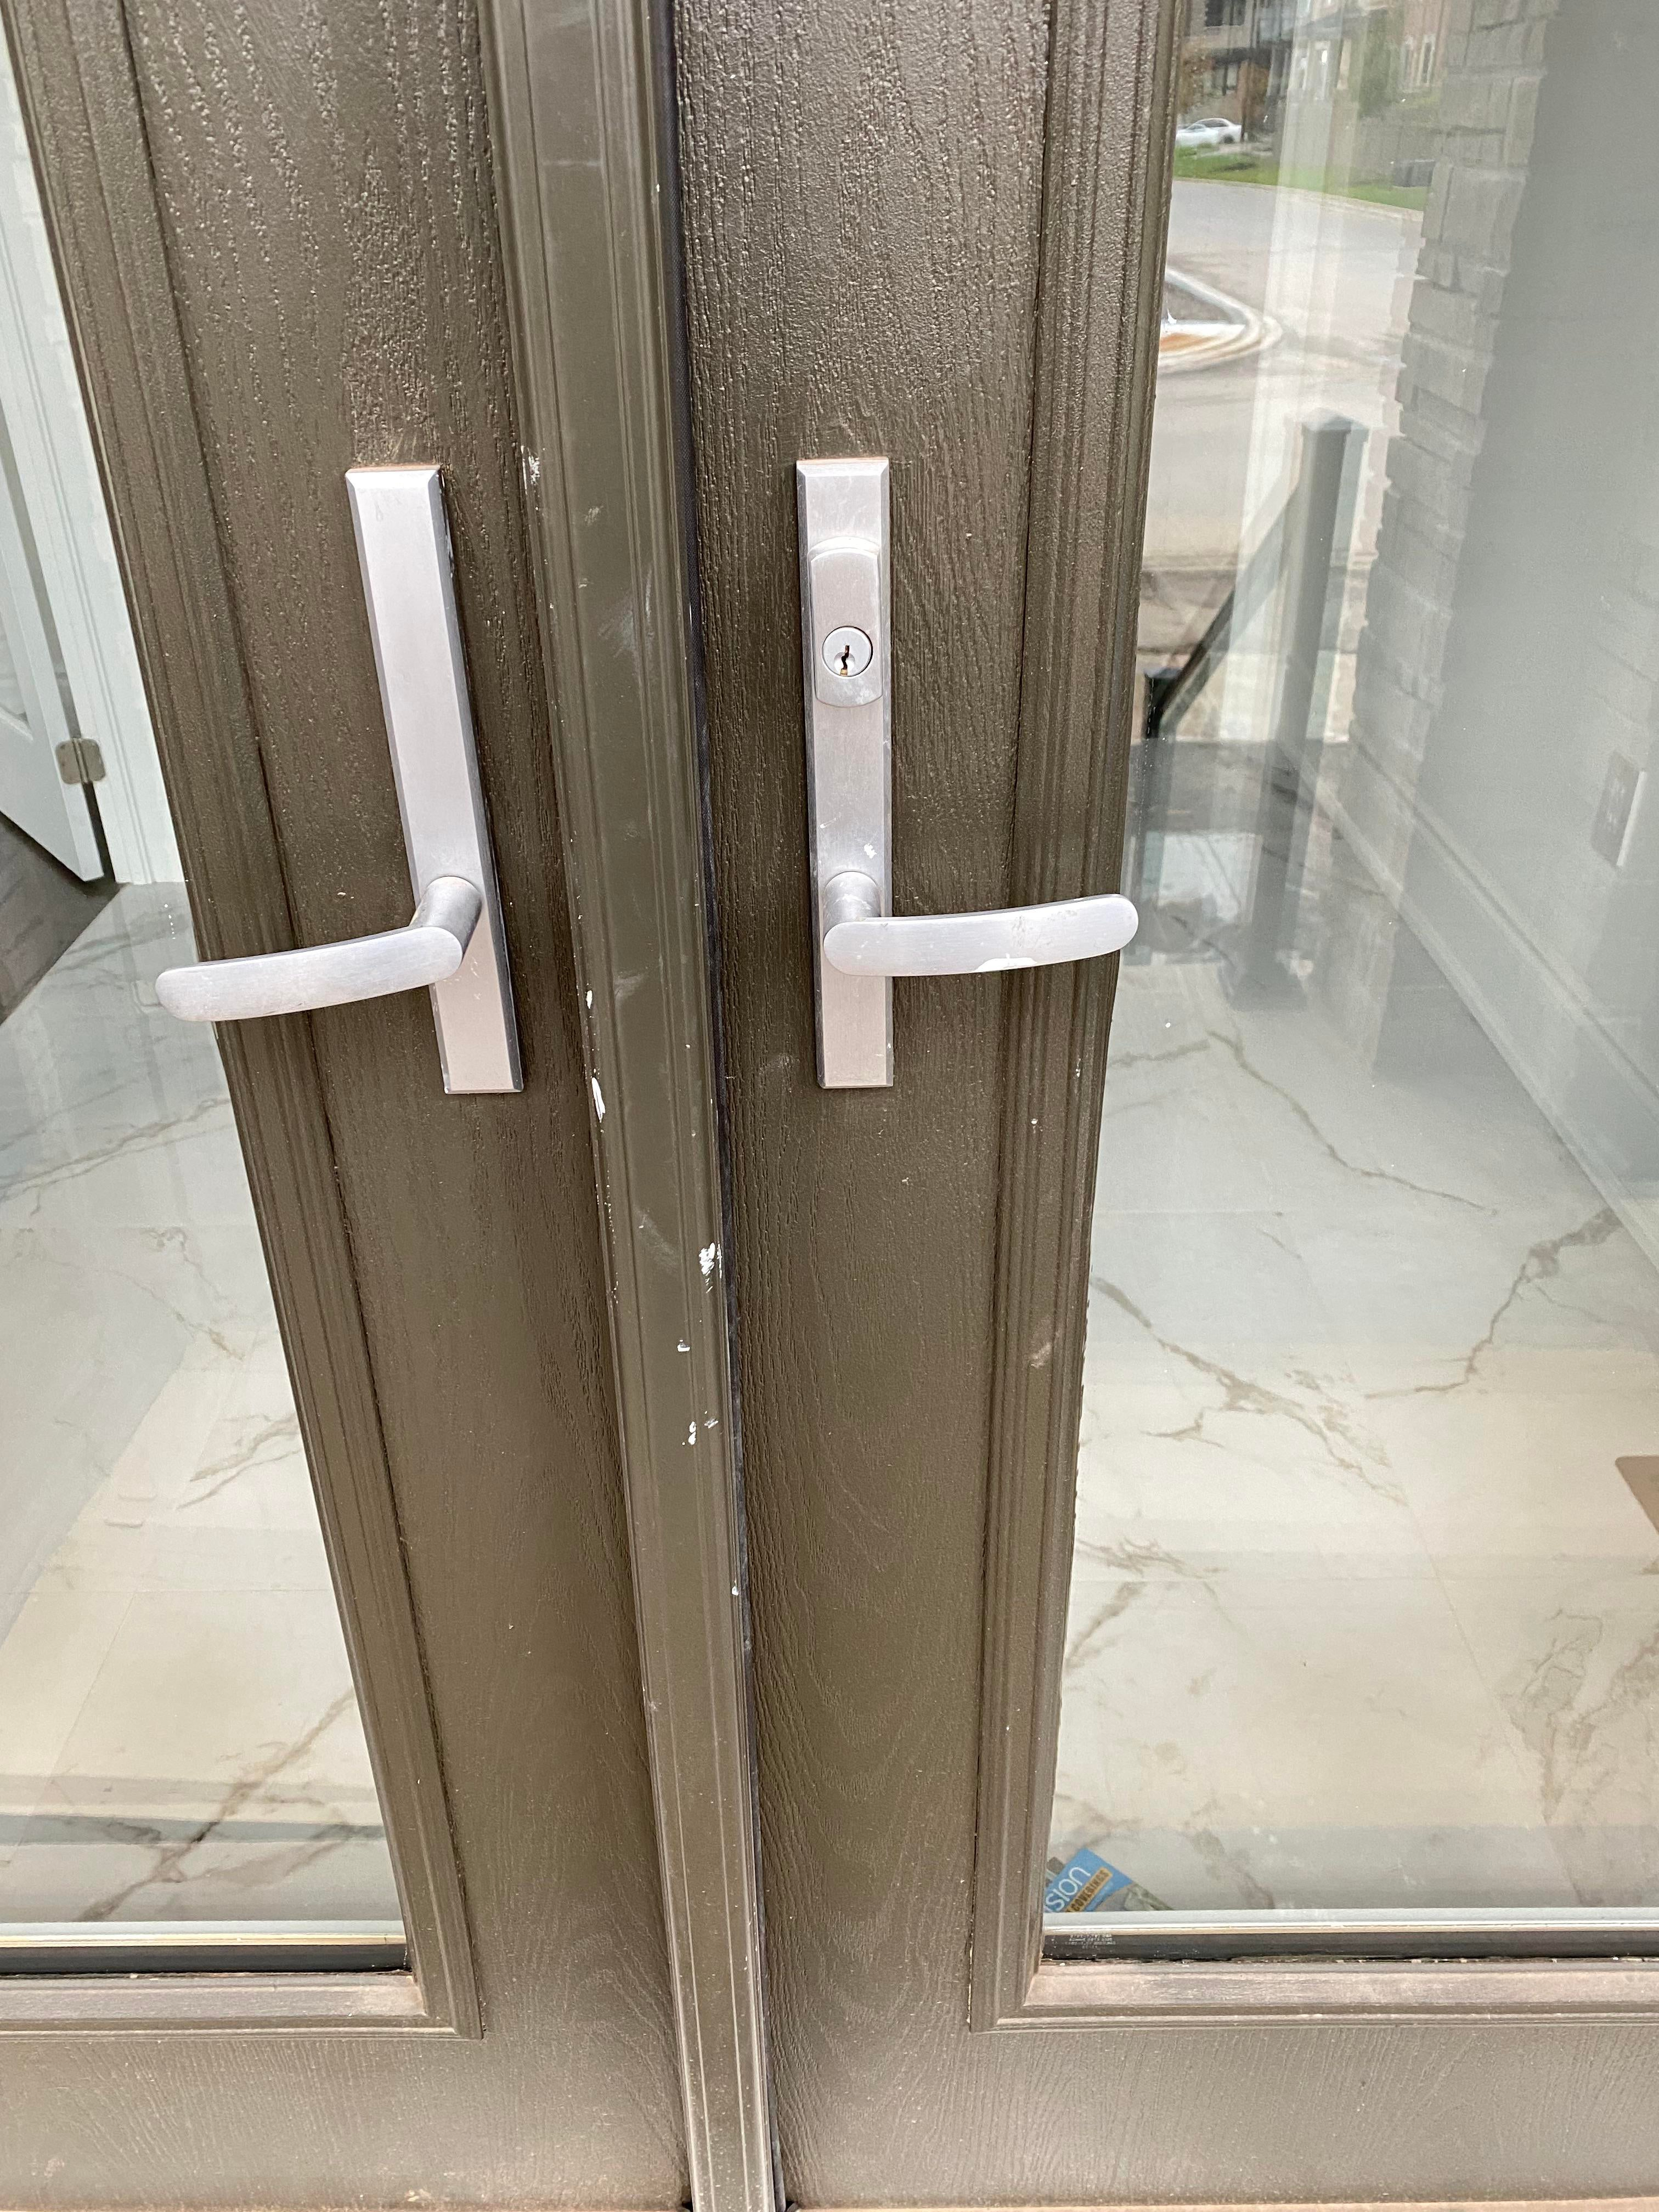 Do you have lock options enabled for homekit for this